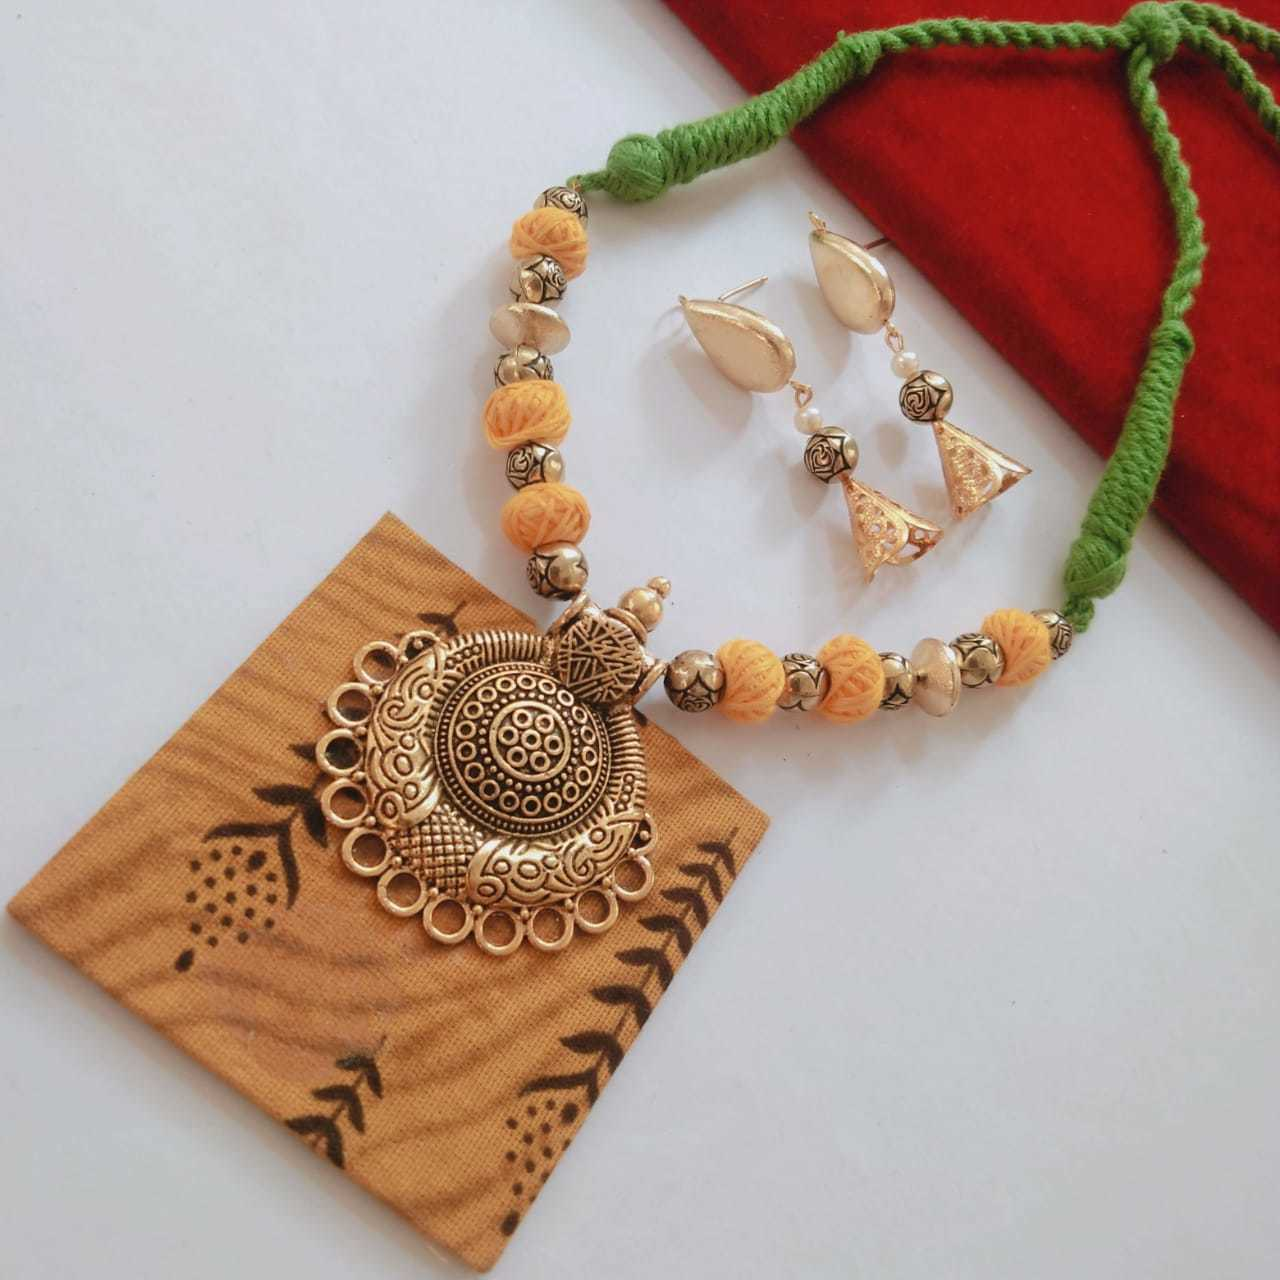 Fabric Necklace With Earrings